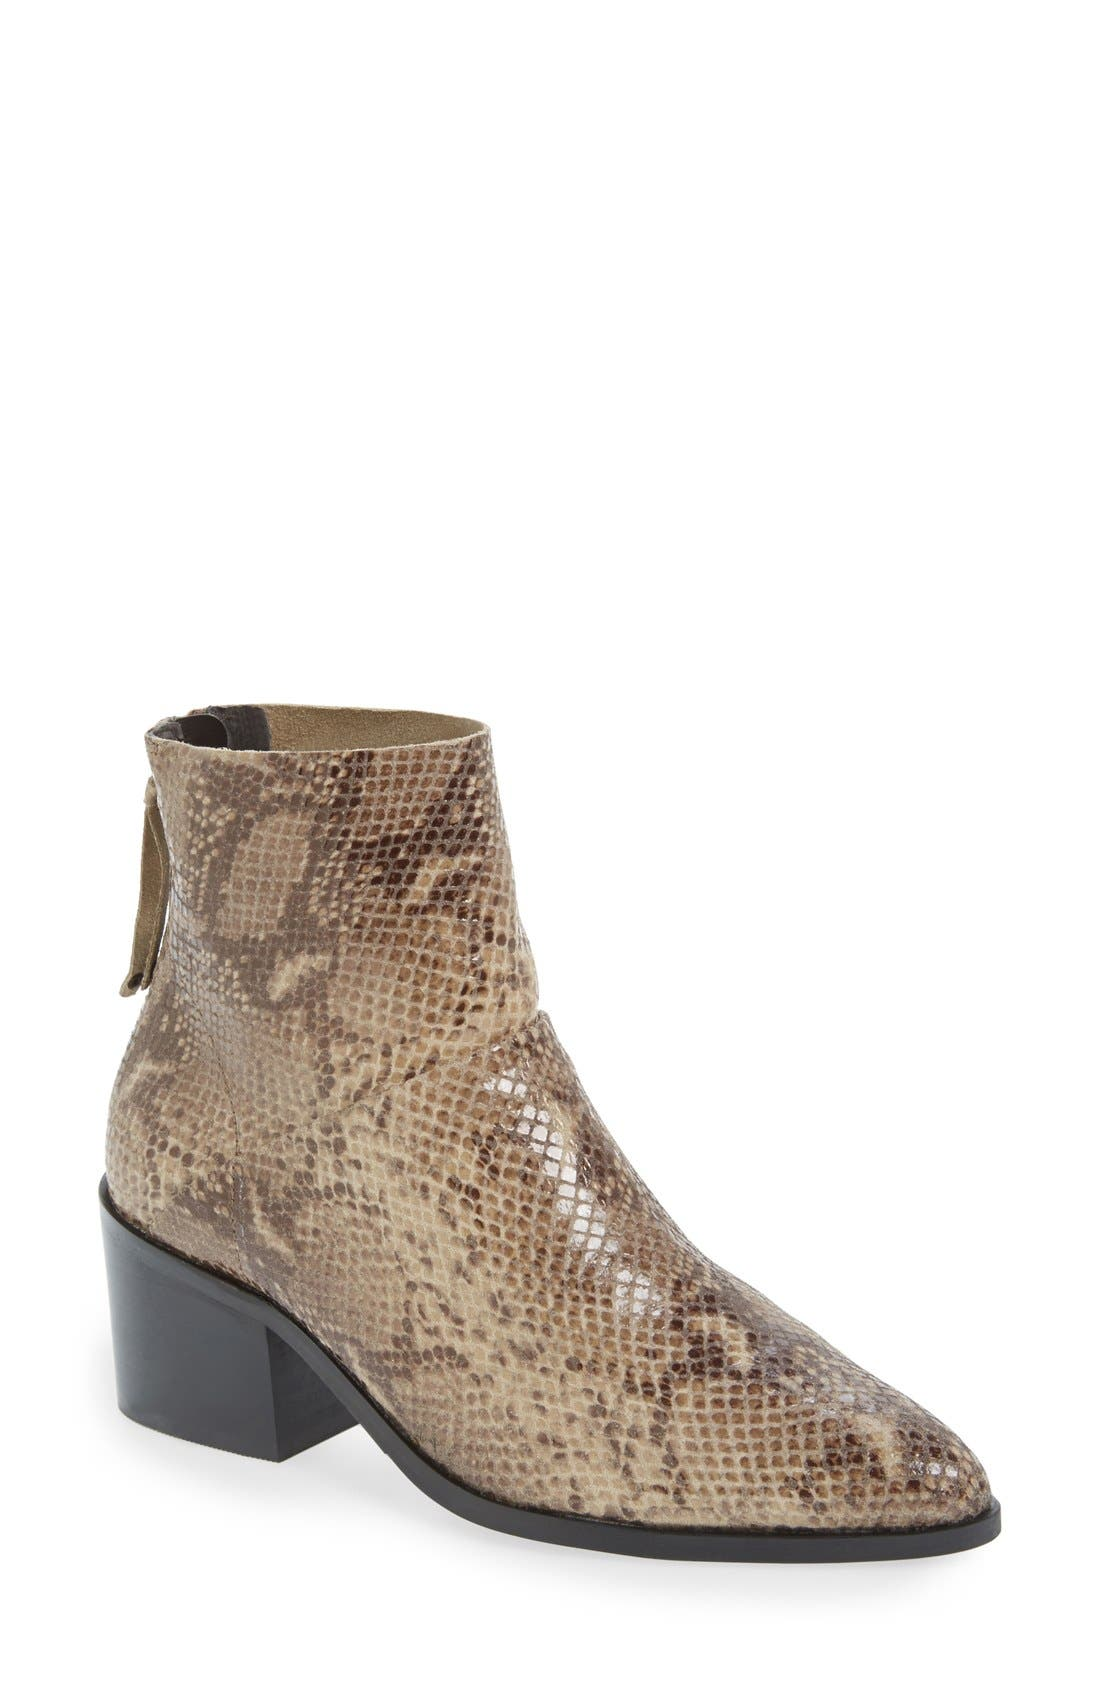 Alternate Image 1 Selected - Topshop 'Midnight' Snake Embossed Ankle Boot (Women)